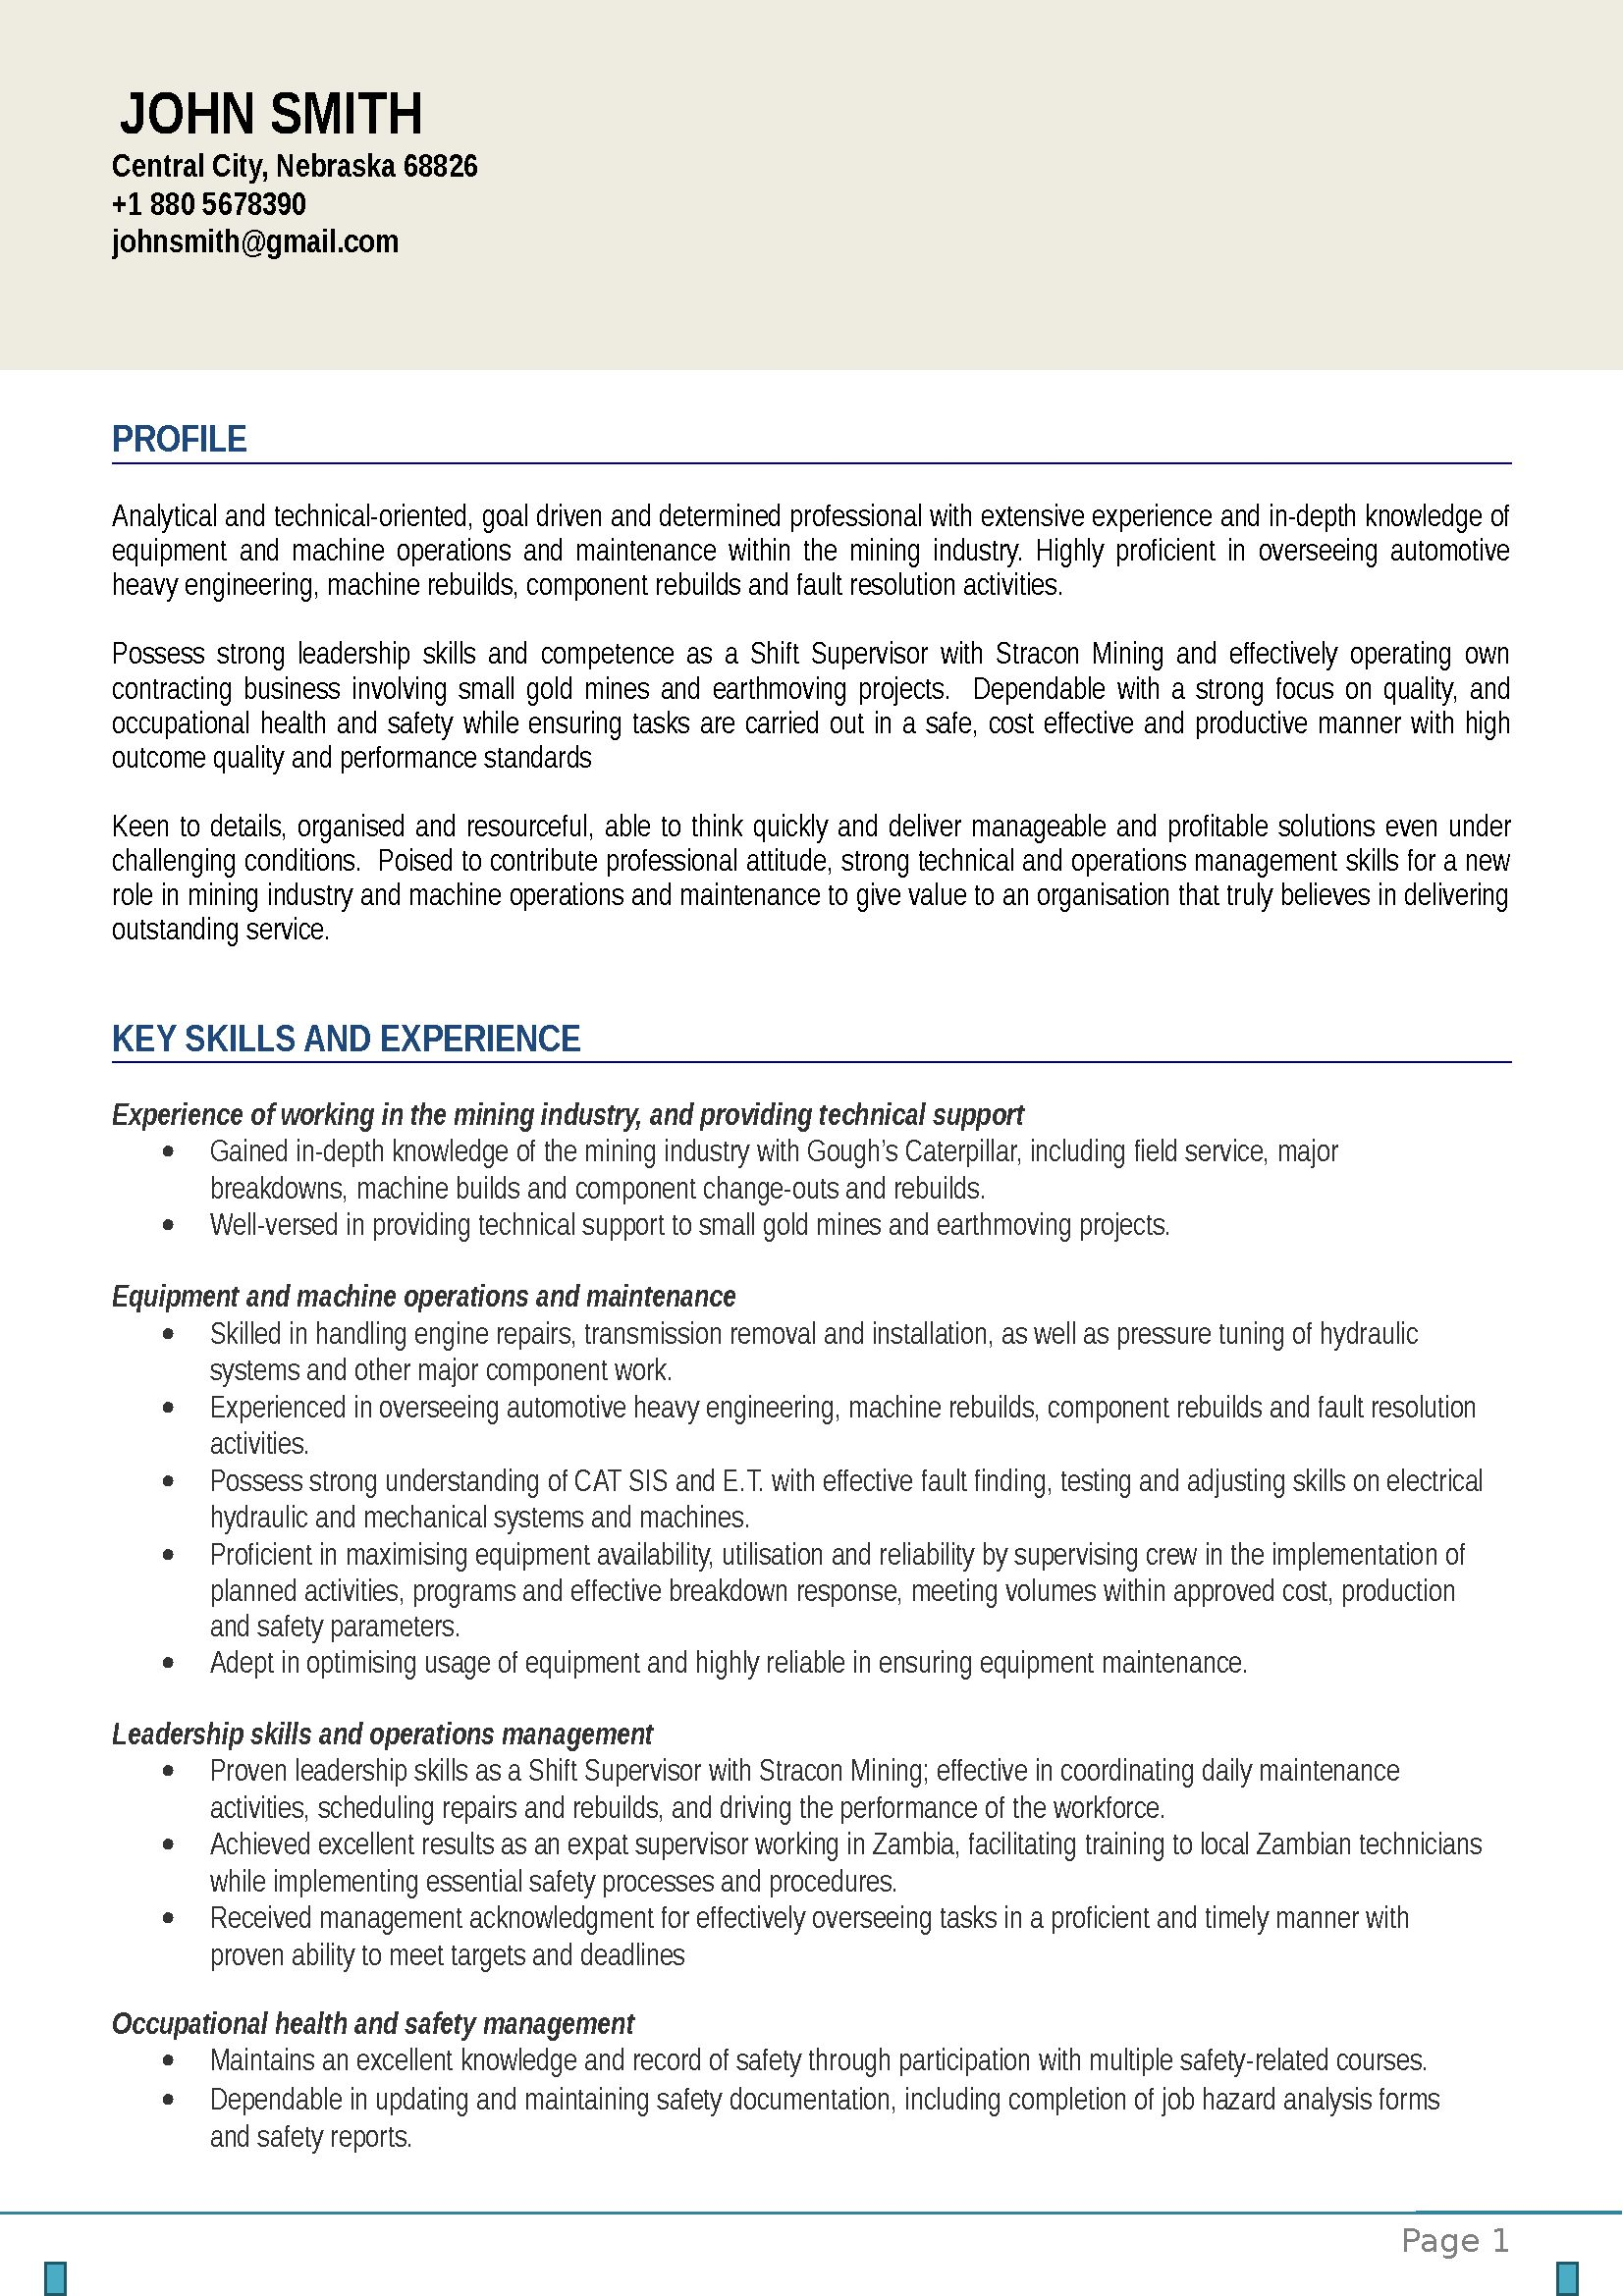 best latex font for resume service resume best latex font for resume what is the best font for a cv one that makes